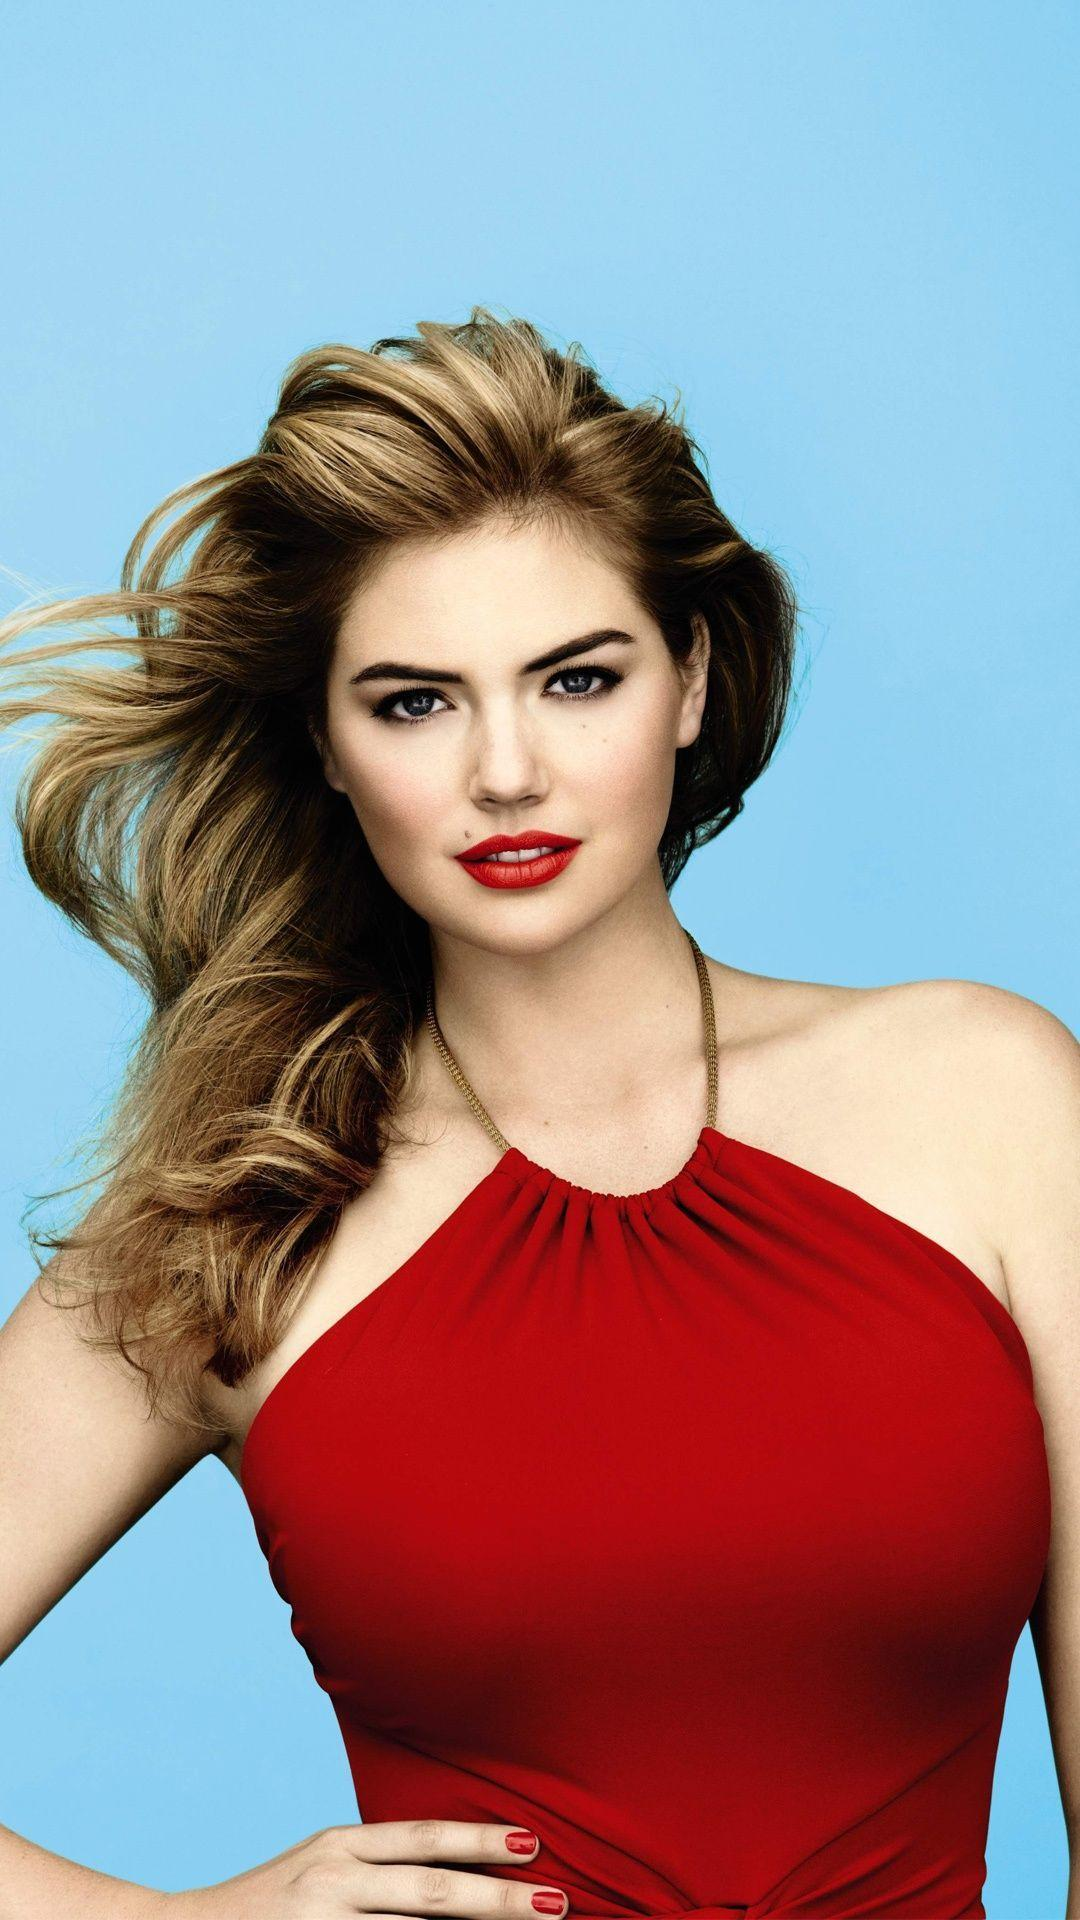 Kate Upton 2019 Wallpapers Wallpaper Cave